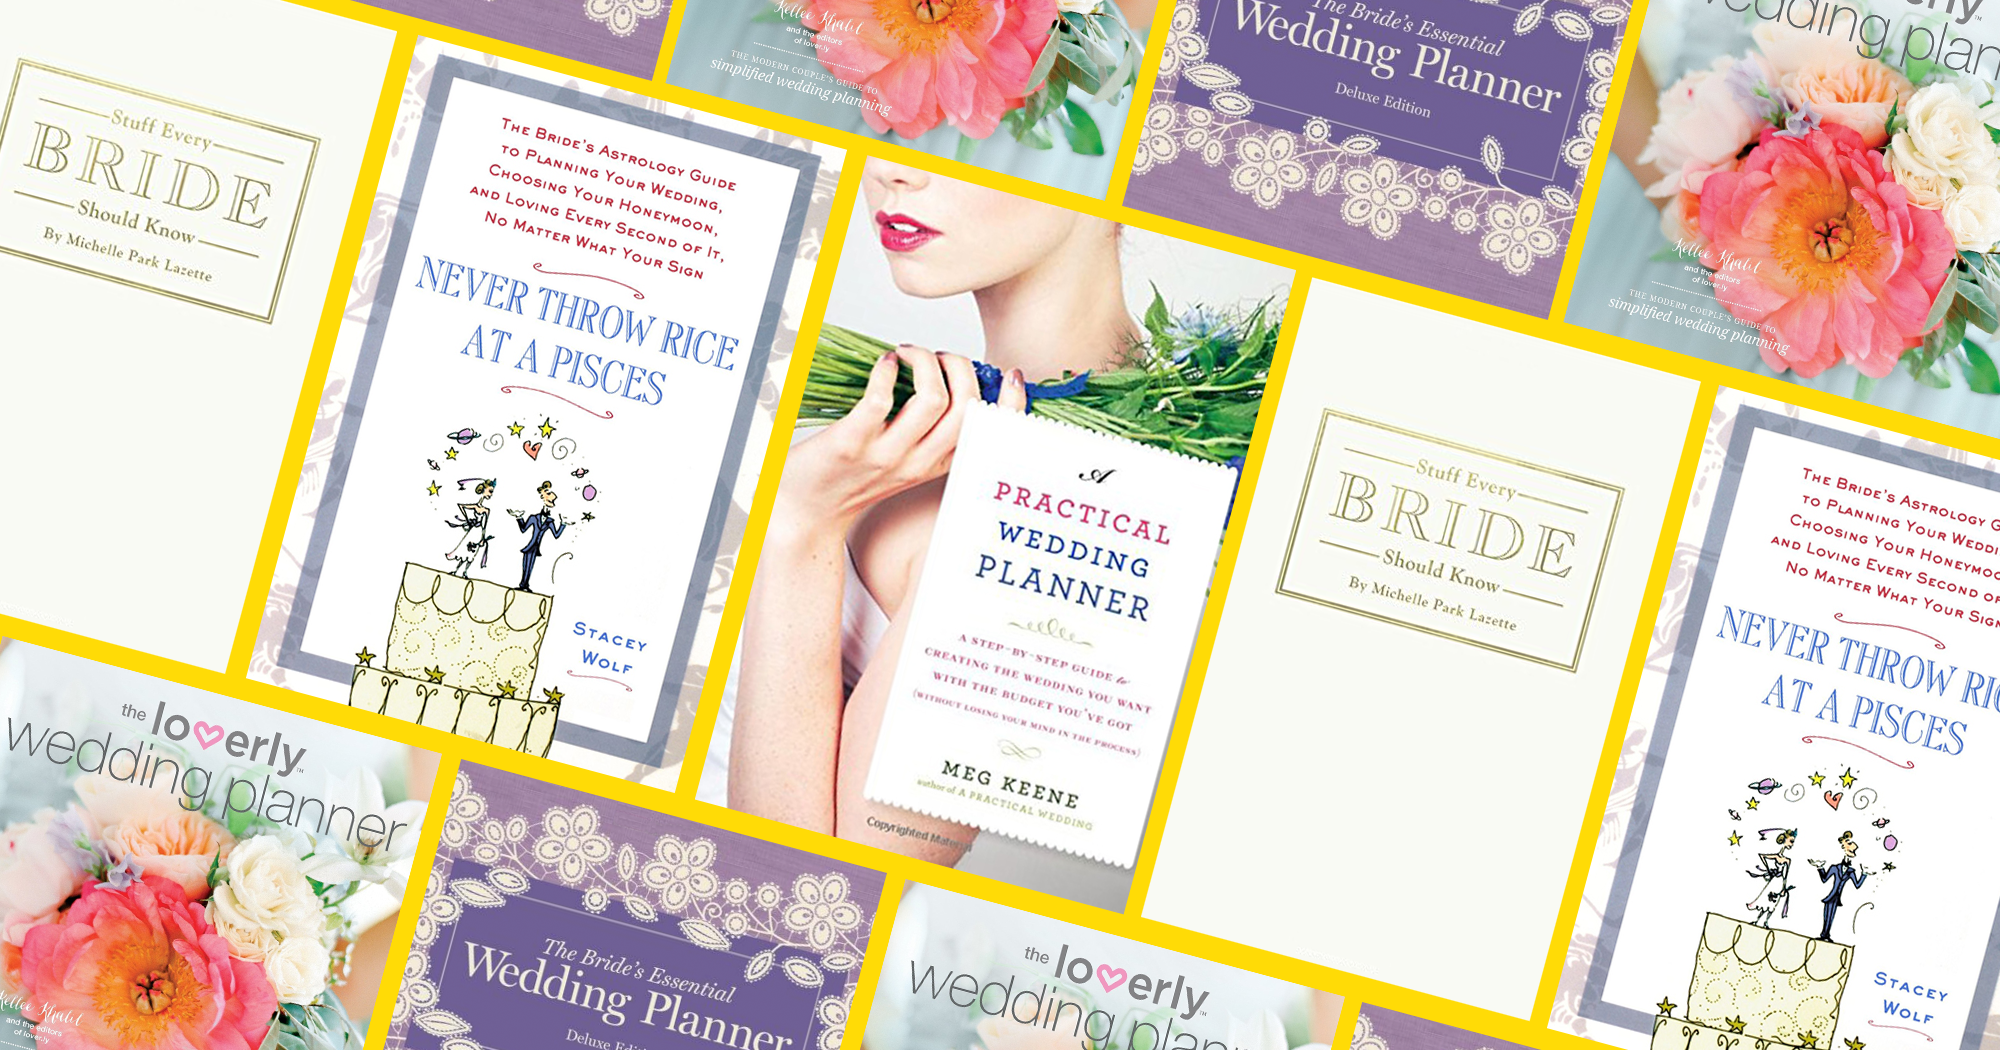 Wedding Planner Ideas Book: Best Planning Books For Brides